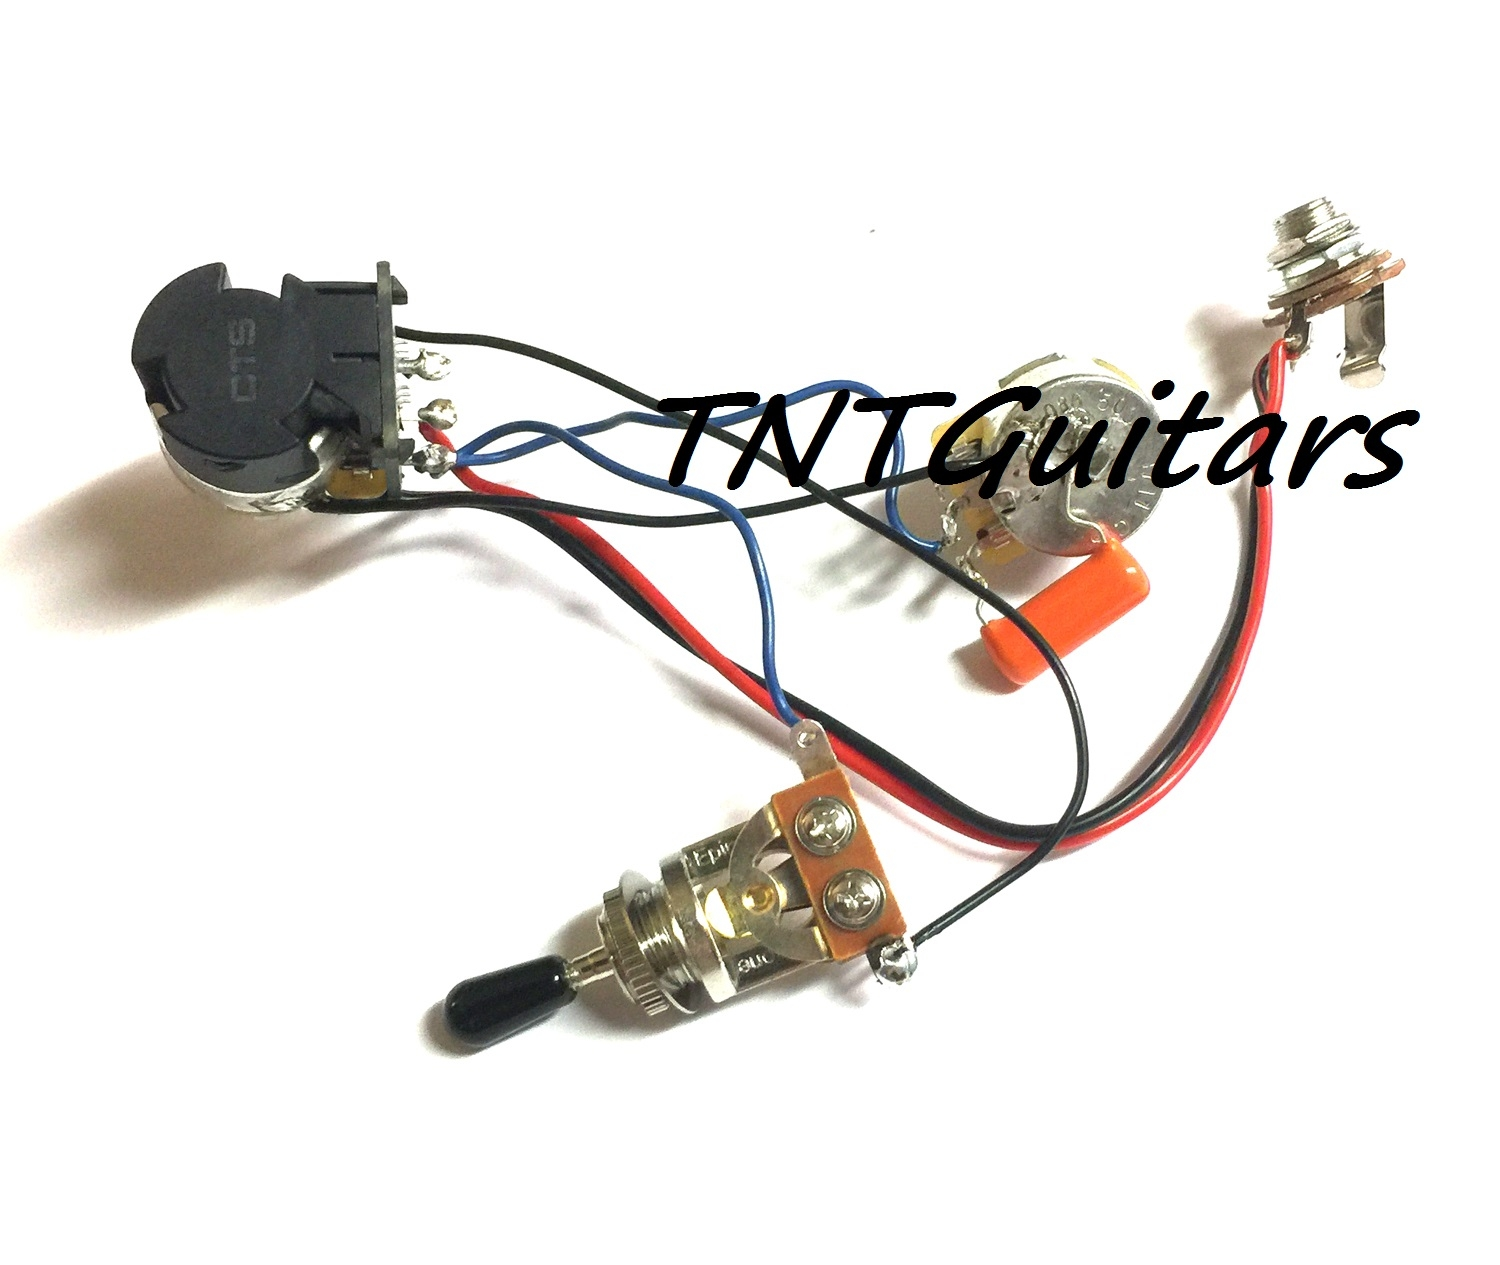 hight resolution of 1v1t guitar vt harness 2 pup cts push pull coilsplit 3wtoggle